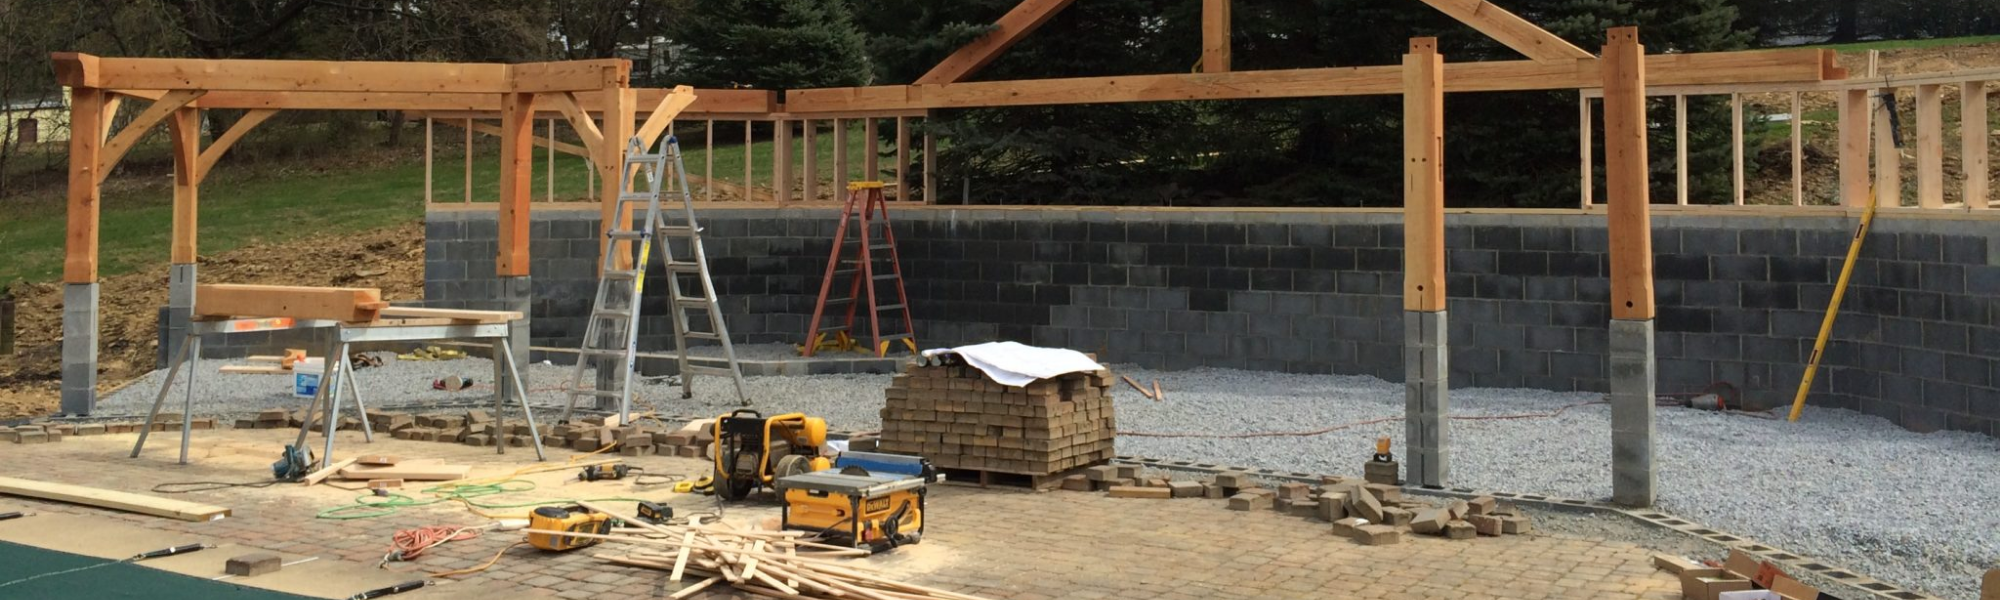 A Custom Home Builder vs. a General Contractor – What's the Difference?